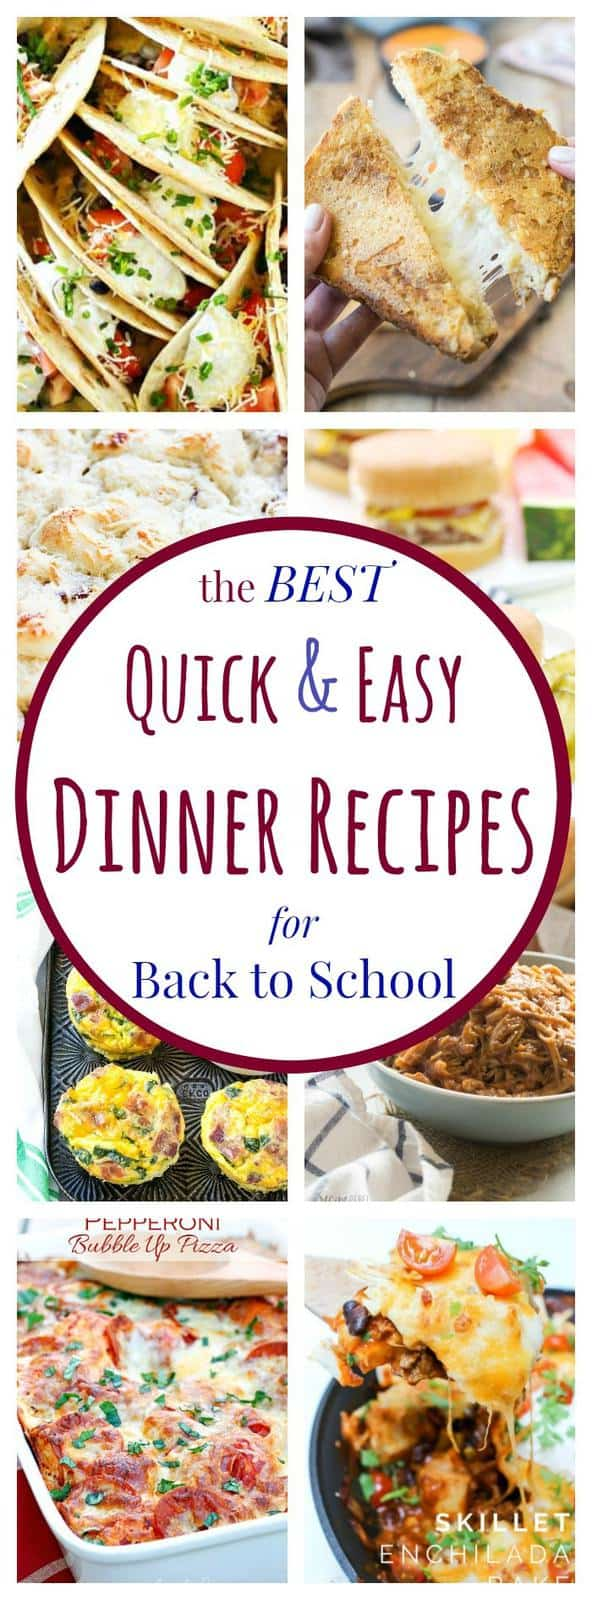 The best quick and easy dinner recipes for back to school the best quick and easy dinner recipes fast dinner ideas perfect for back to school forumfinder Choice Image